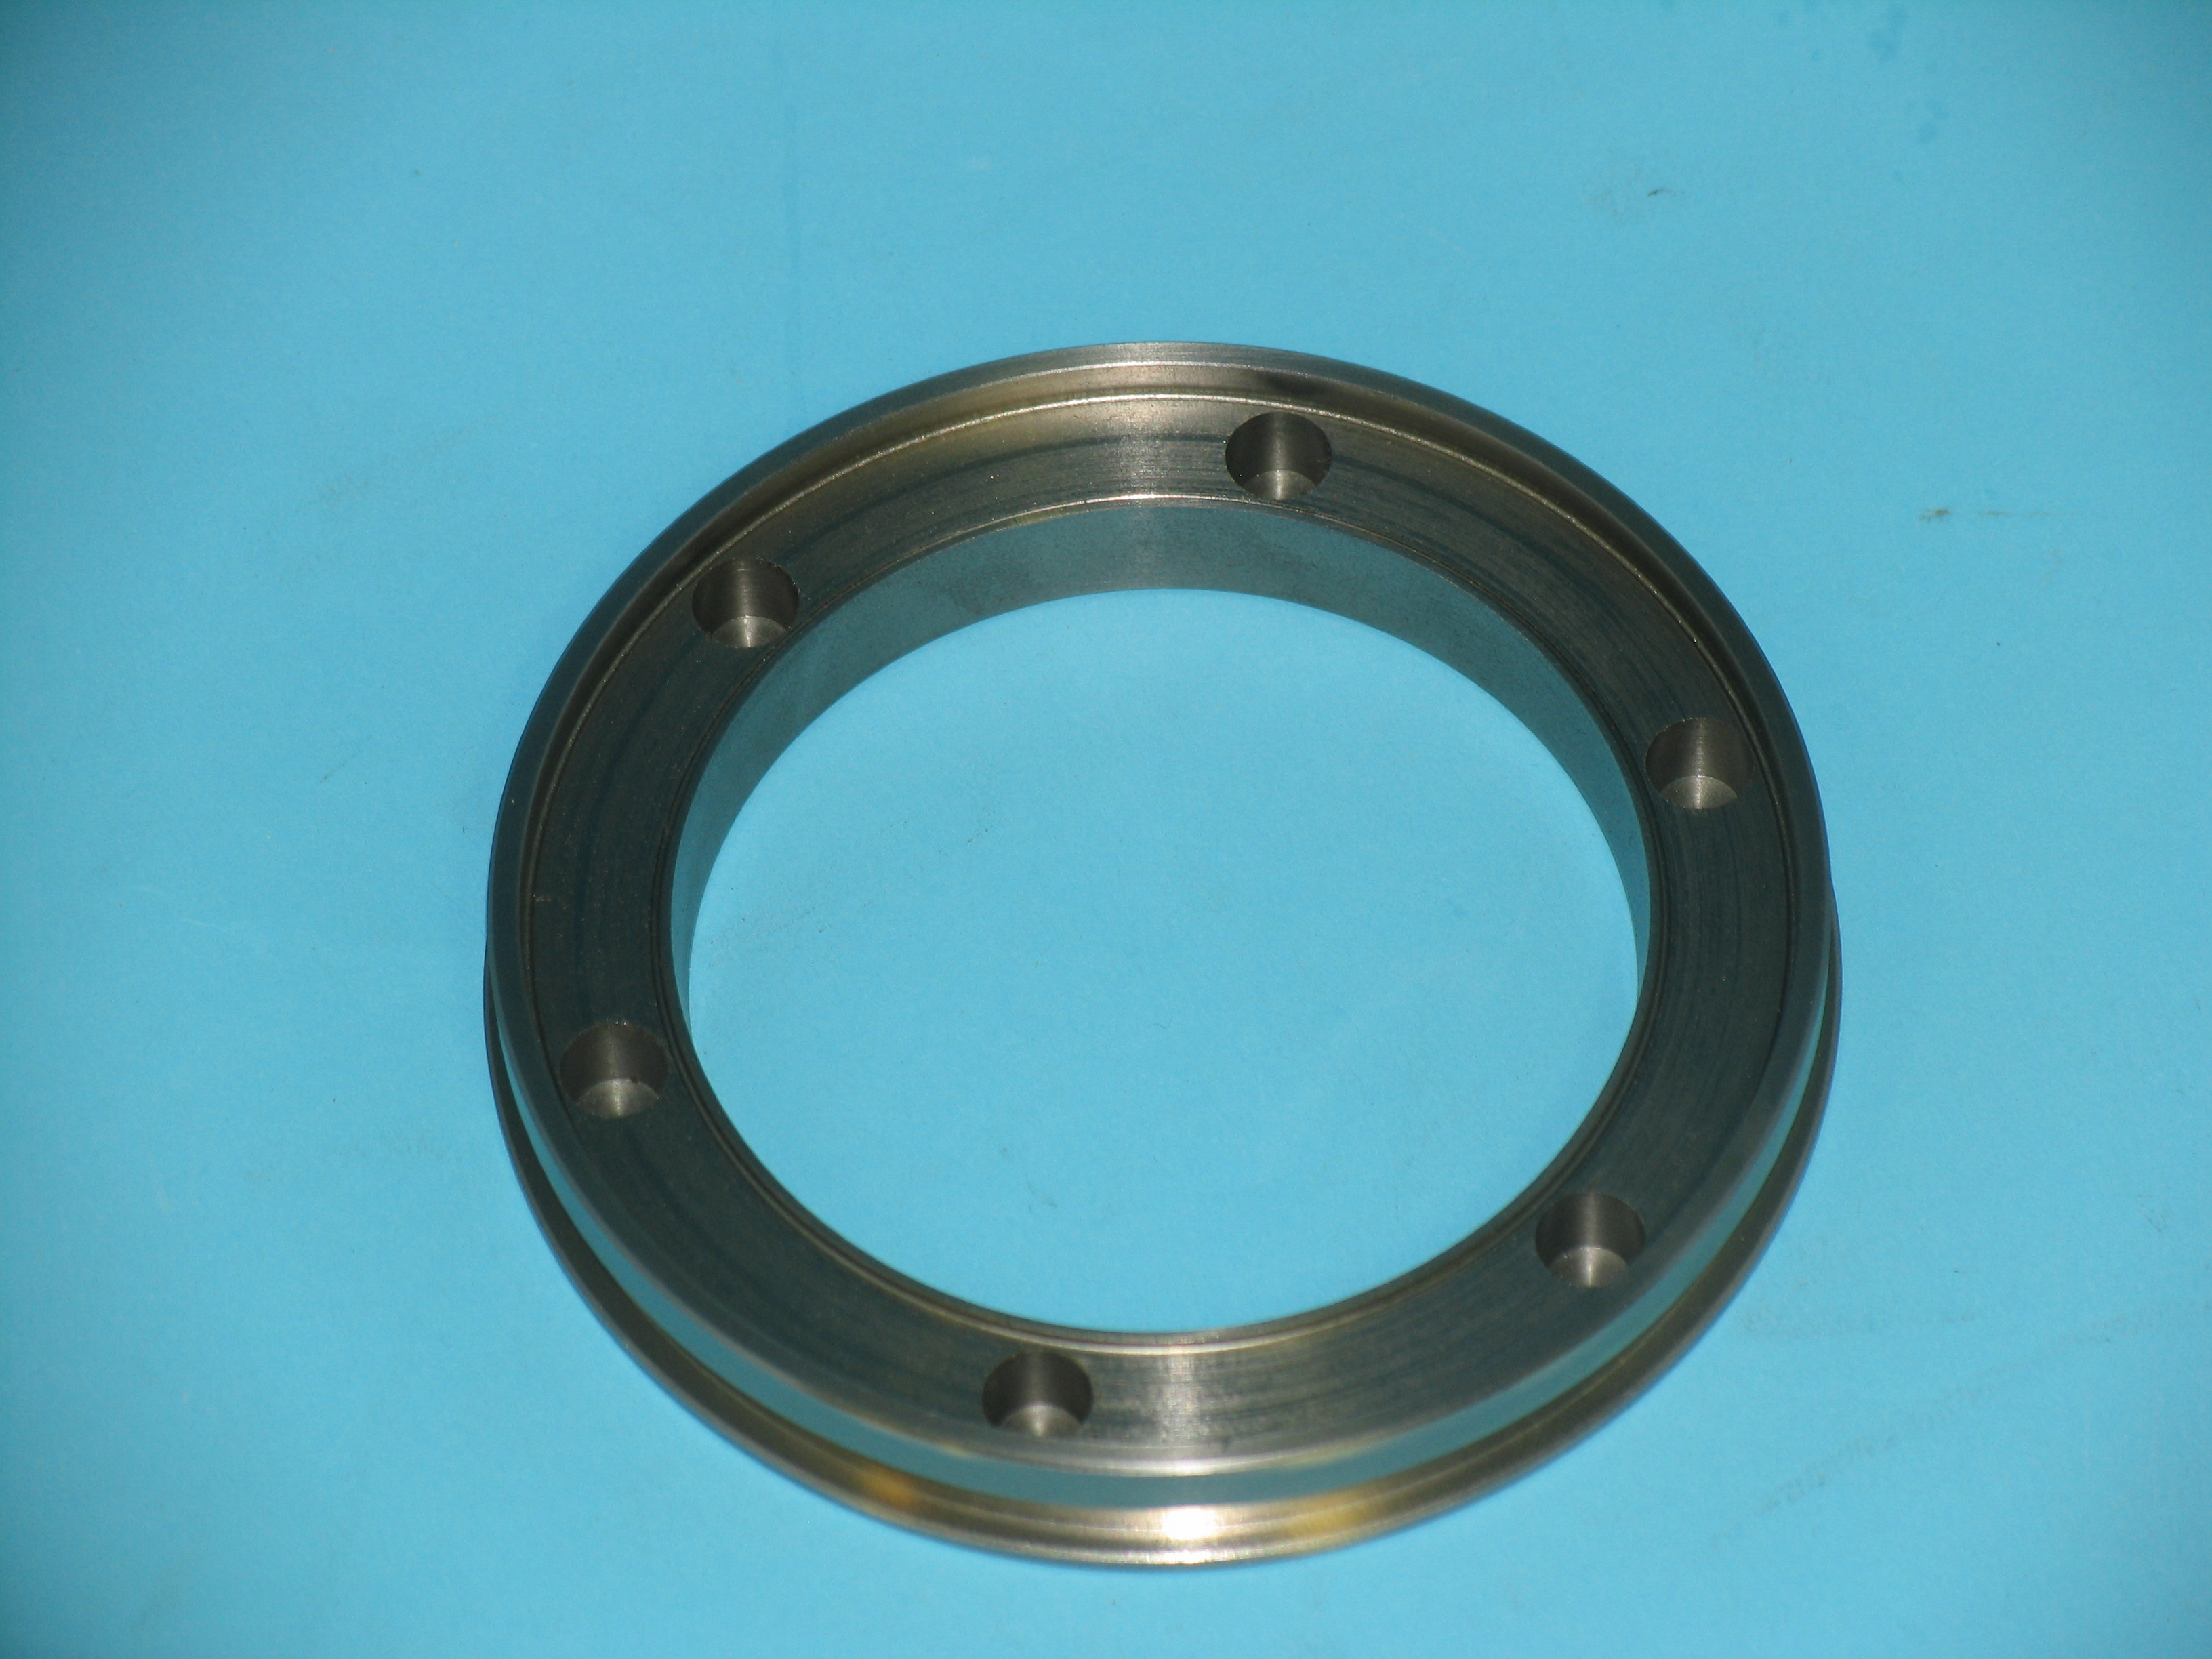 PLT-0072 Suction Plate; R/N PLT-570